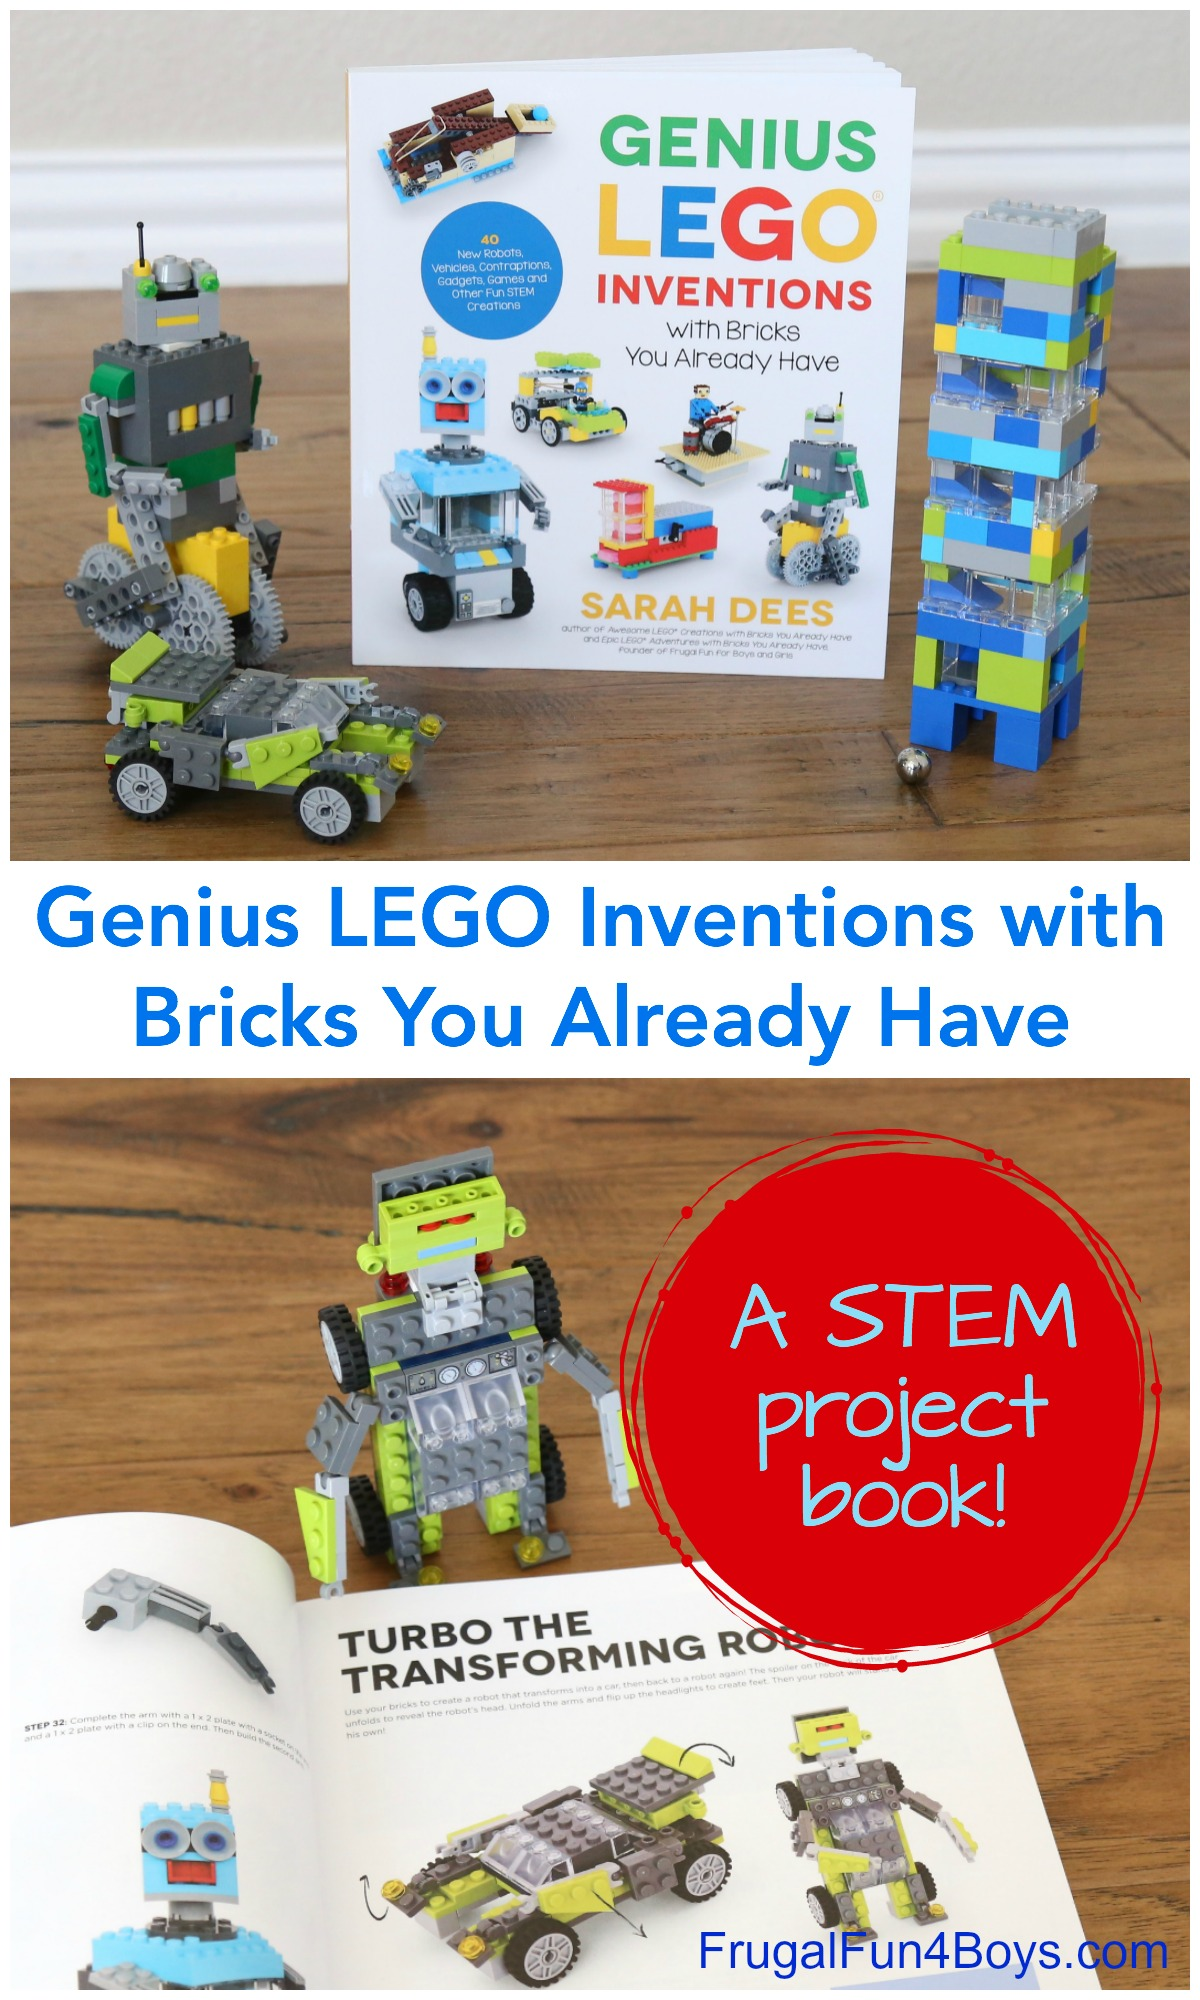 This Lego Stem Project Book Is A Must Have For Future Engineers Frugal Fun For Boys And Girls